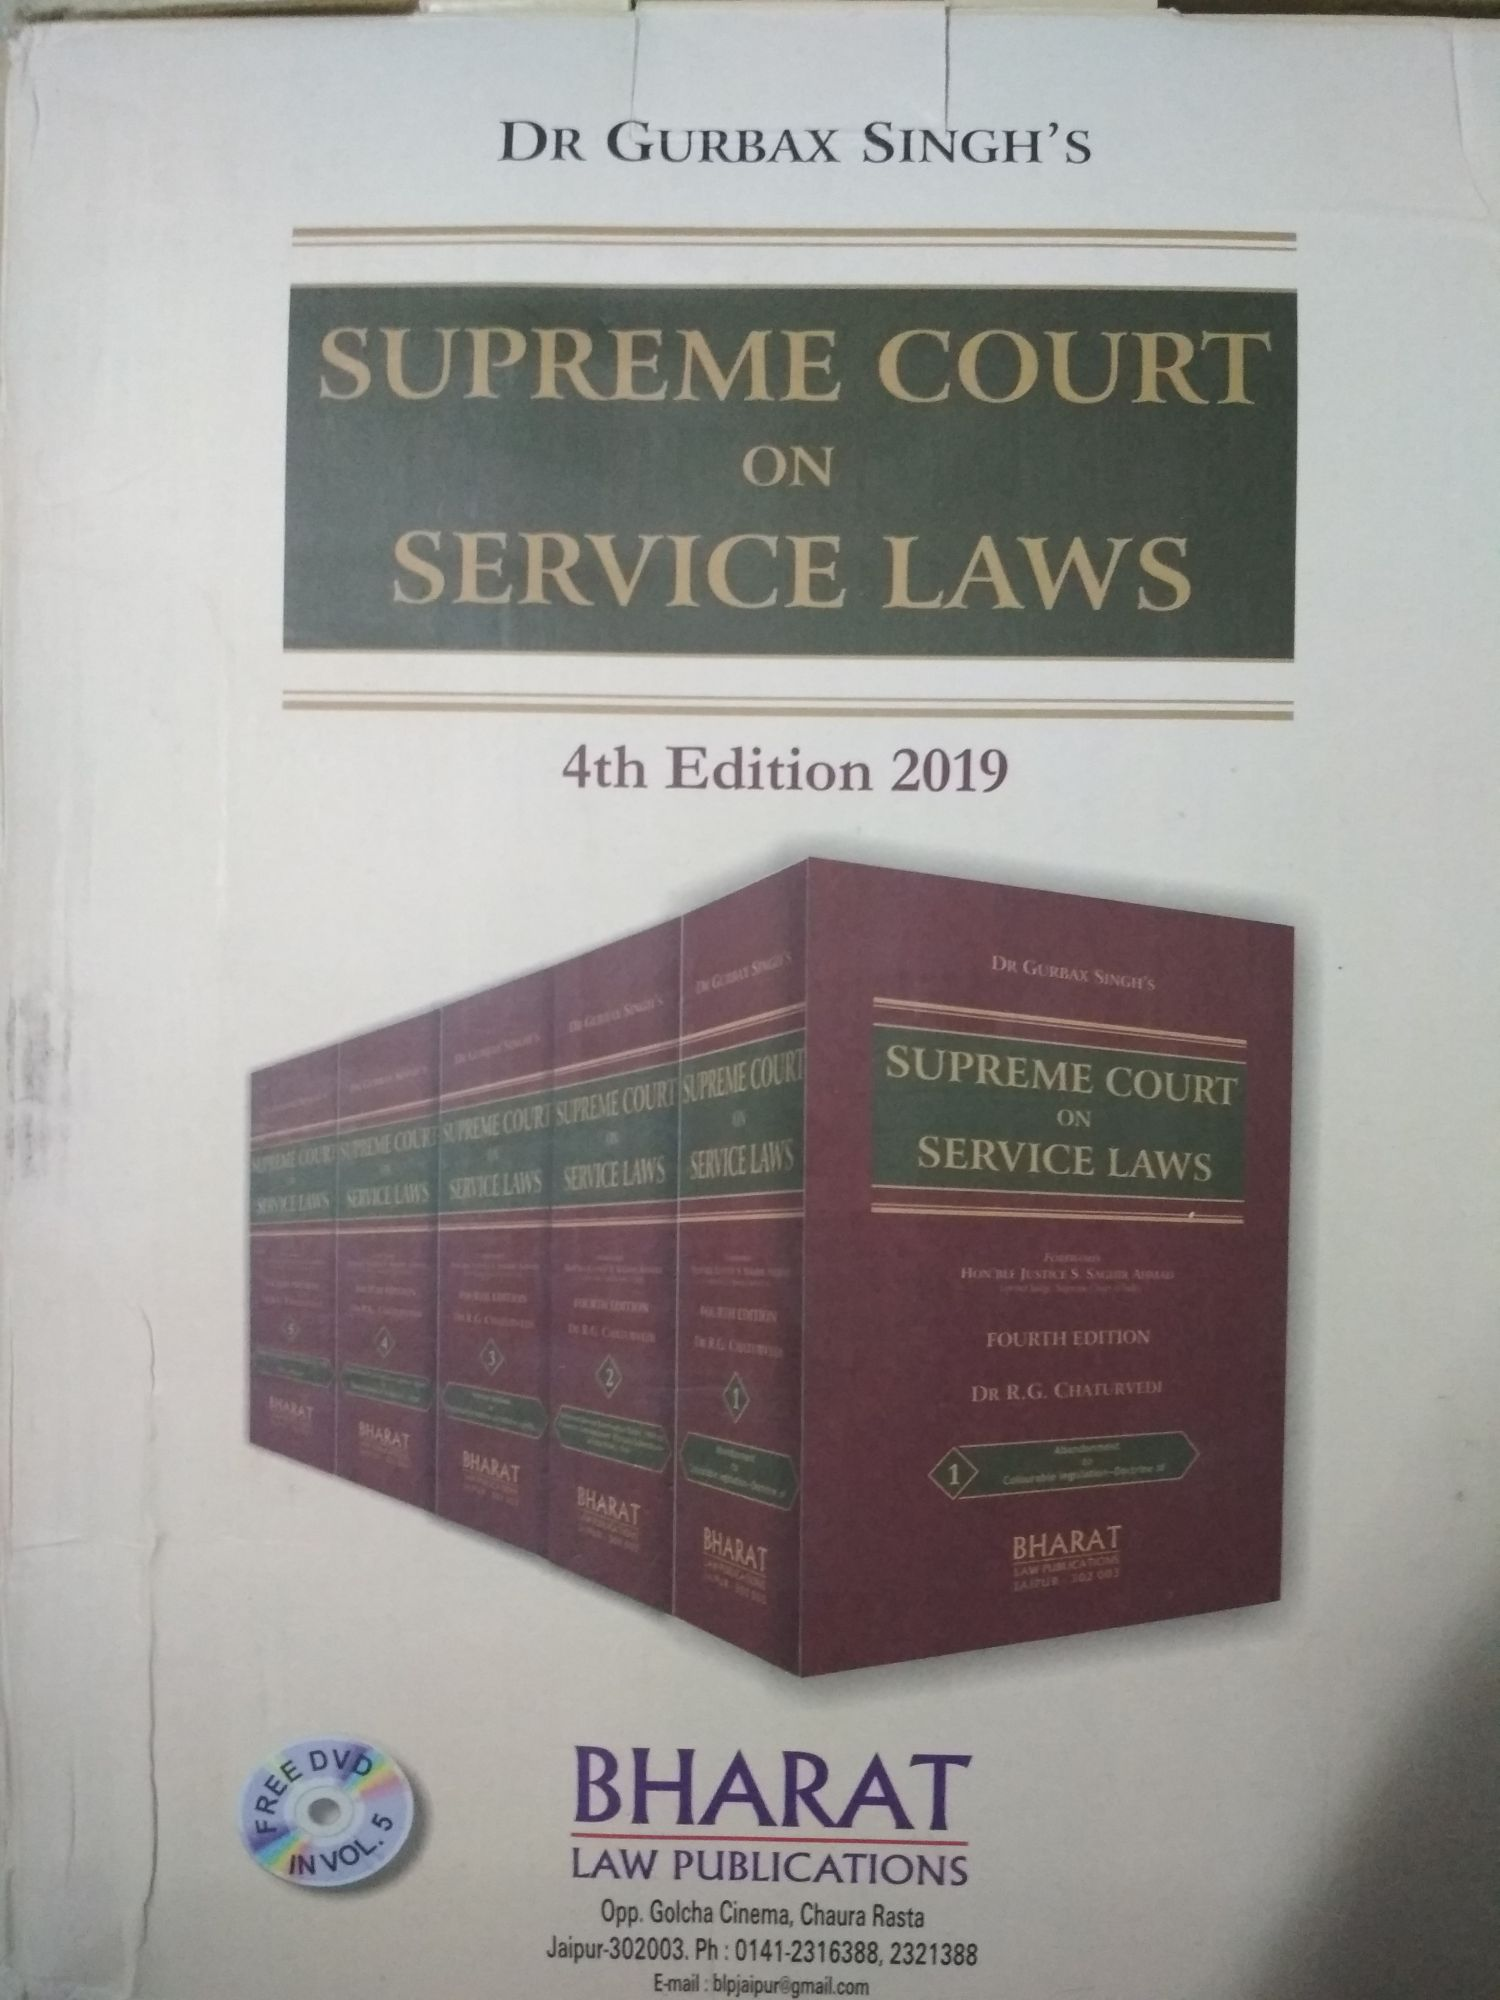 Dr Gurbax Singh Supreme Court On Service Laws In 5 Volumes Box  4th edition 2019